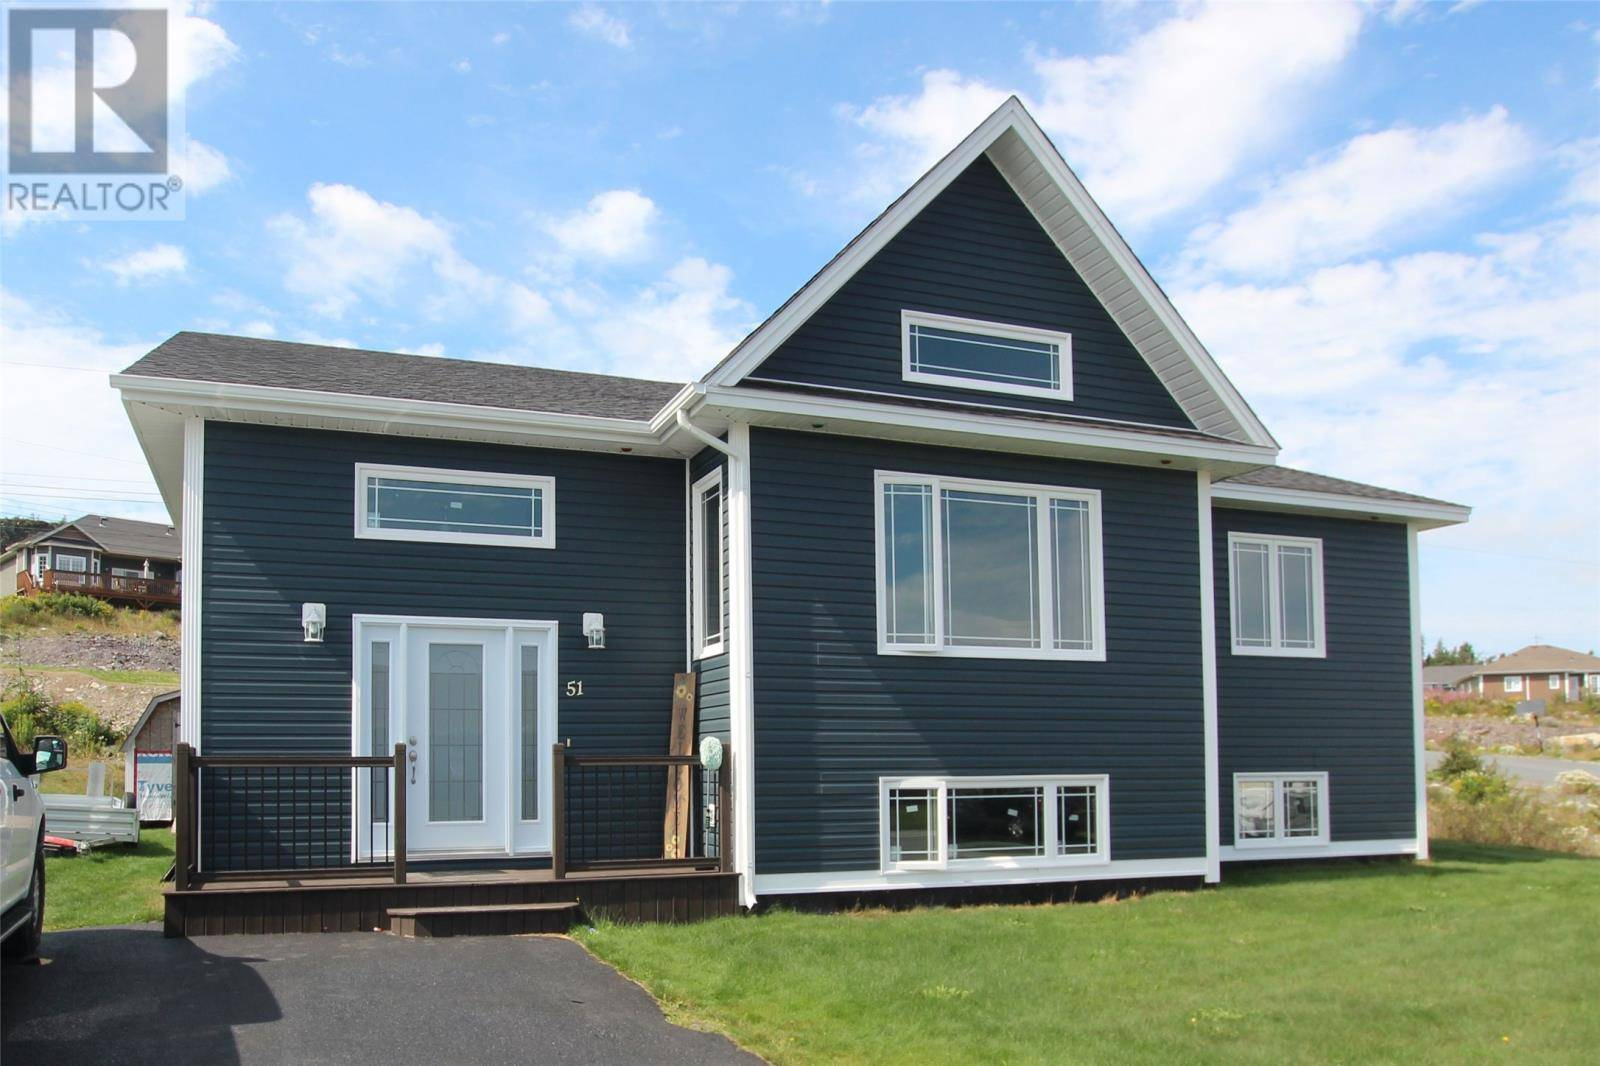 House for sale at 51 Badcock Blvd Bay Roberts Newfoundland - MLS: 1161848